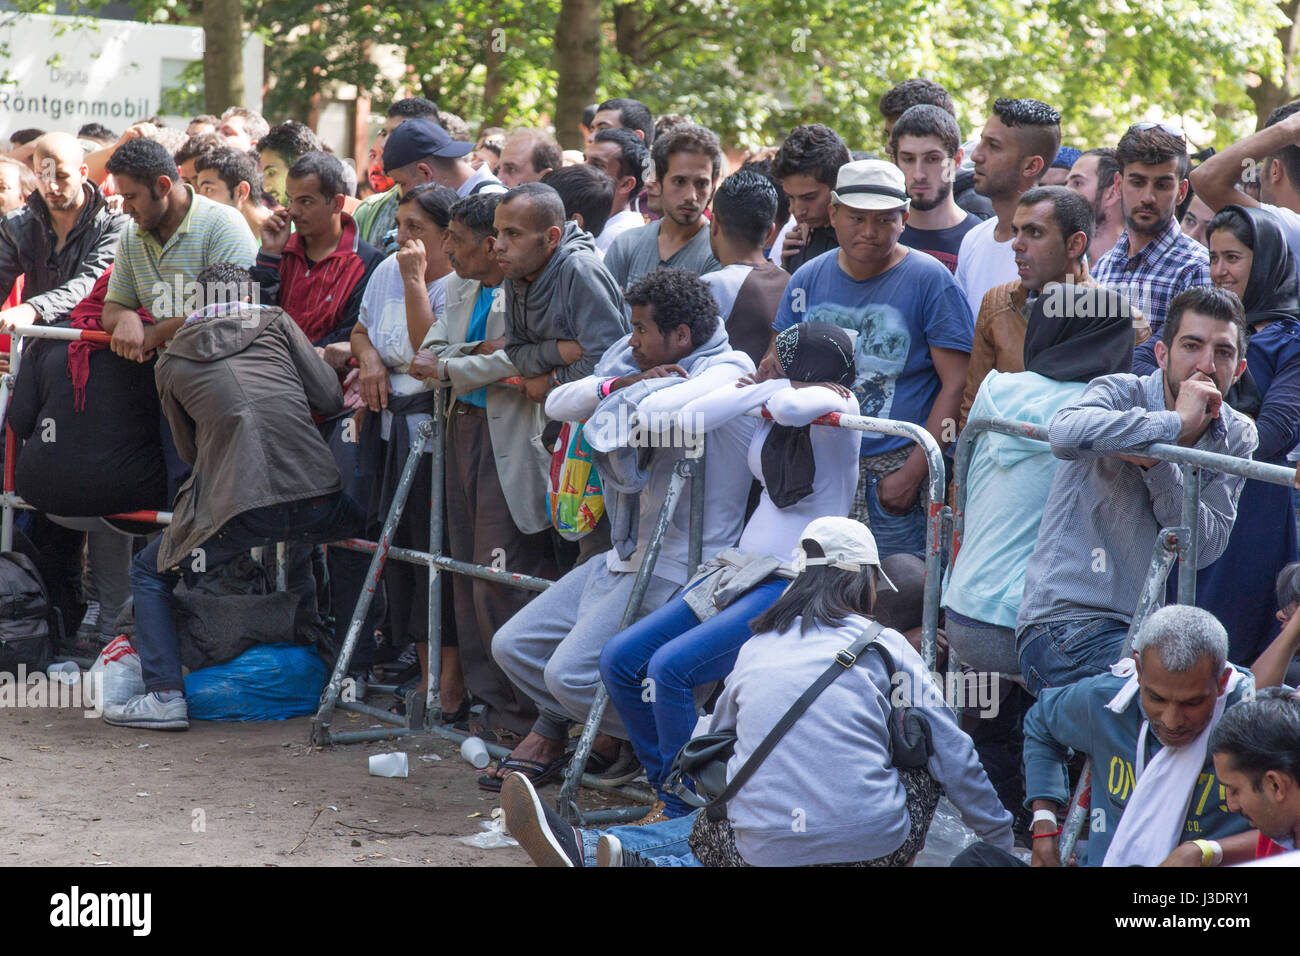 Asylum seeking refugees in Berlin, 2015 Stock Photo